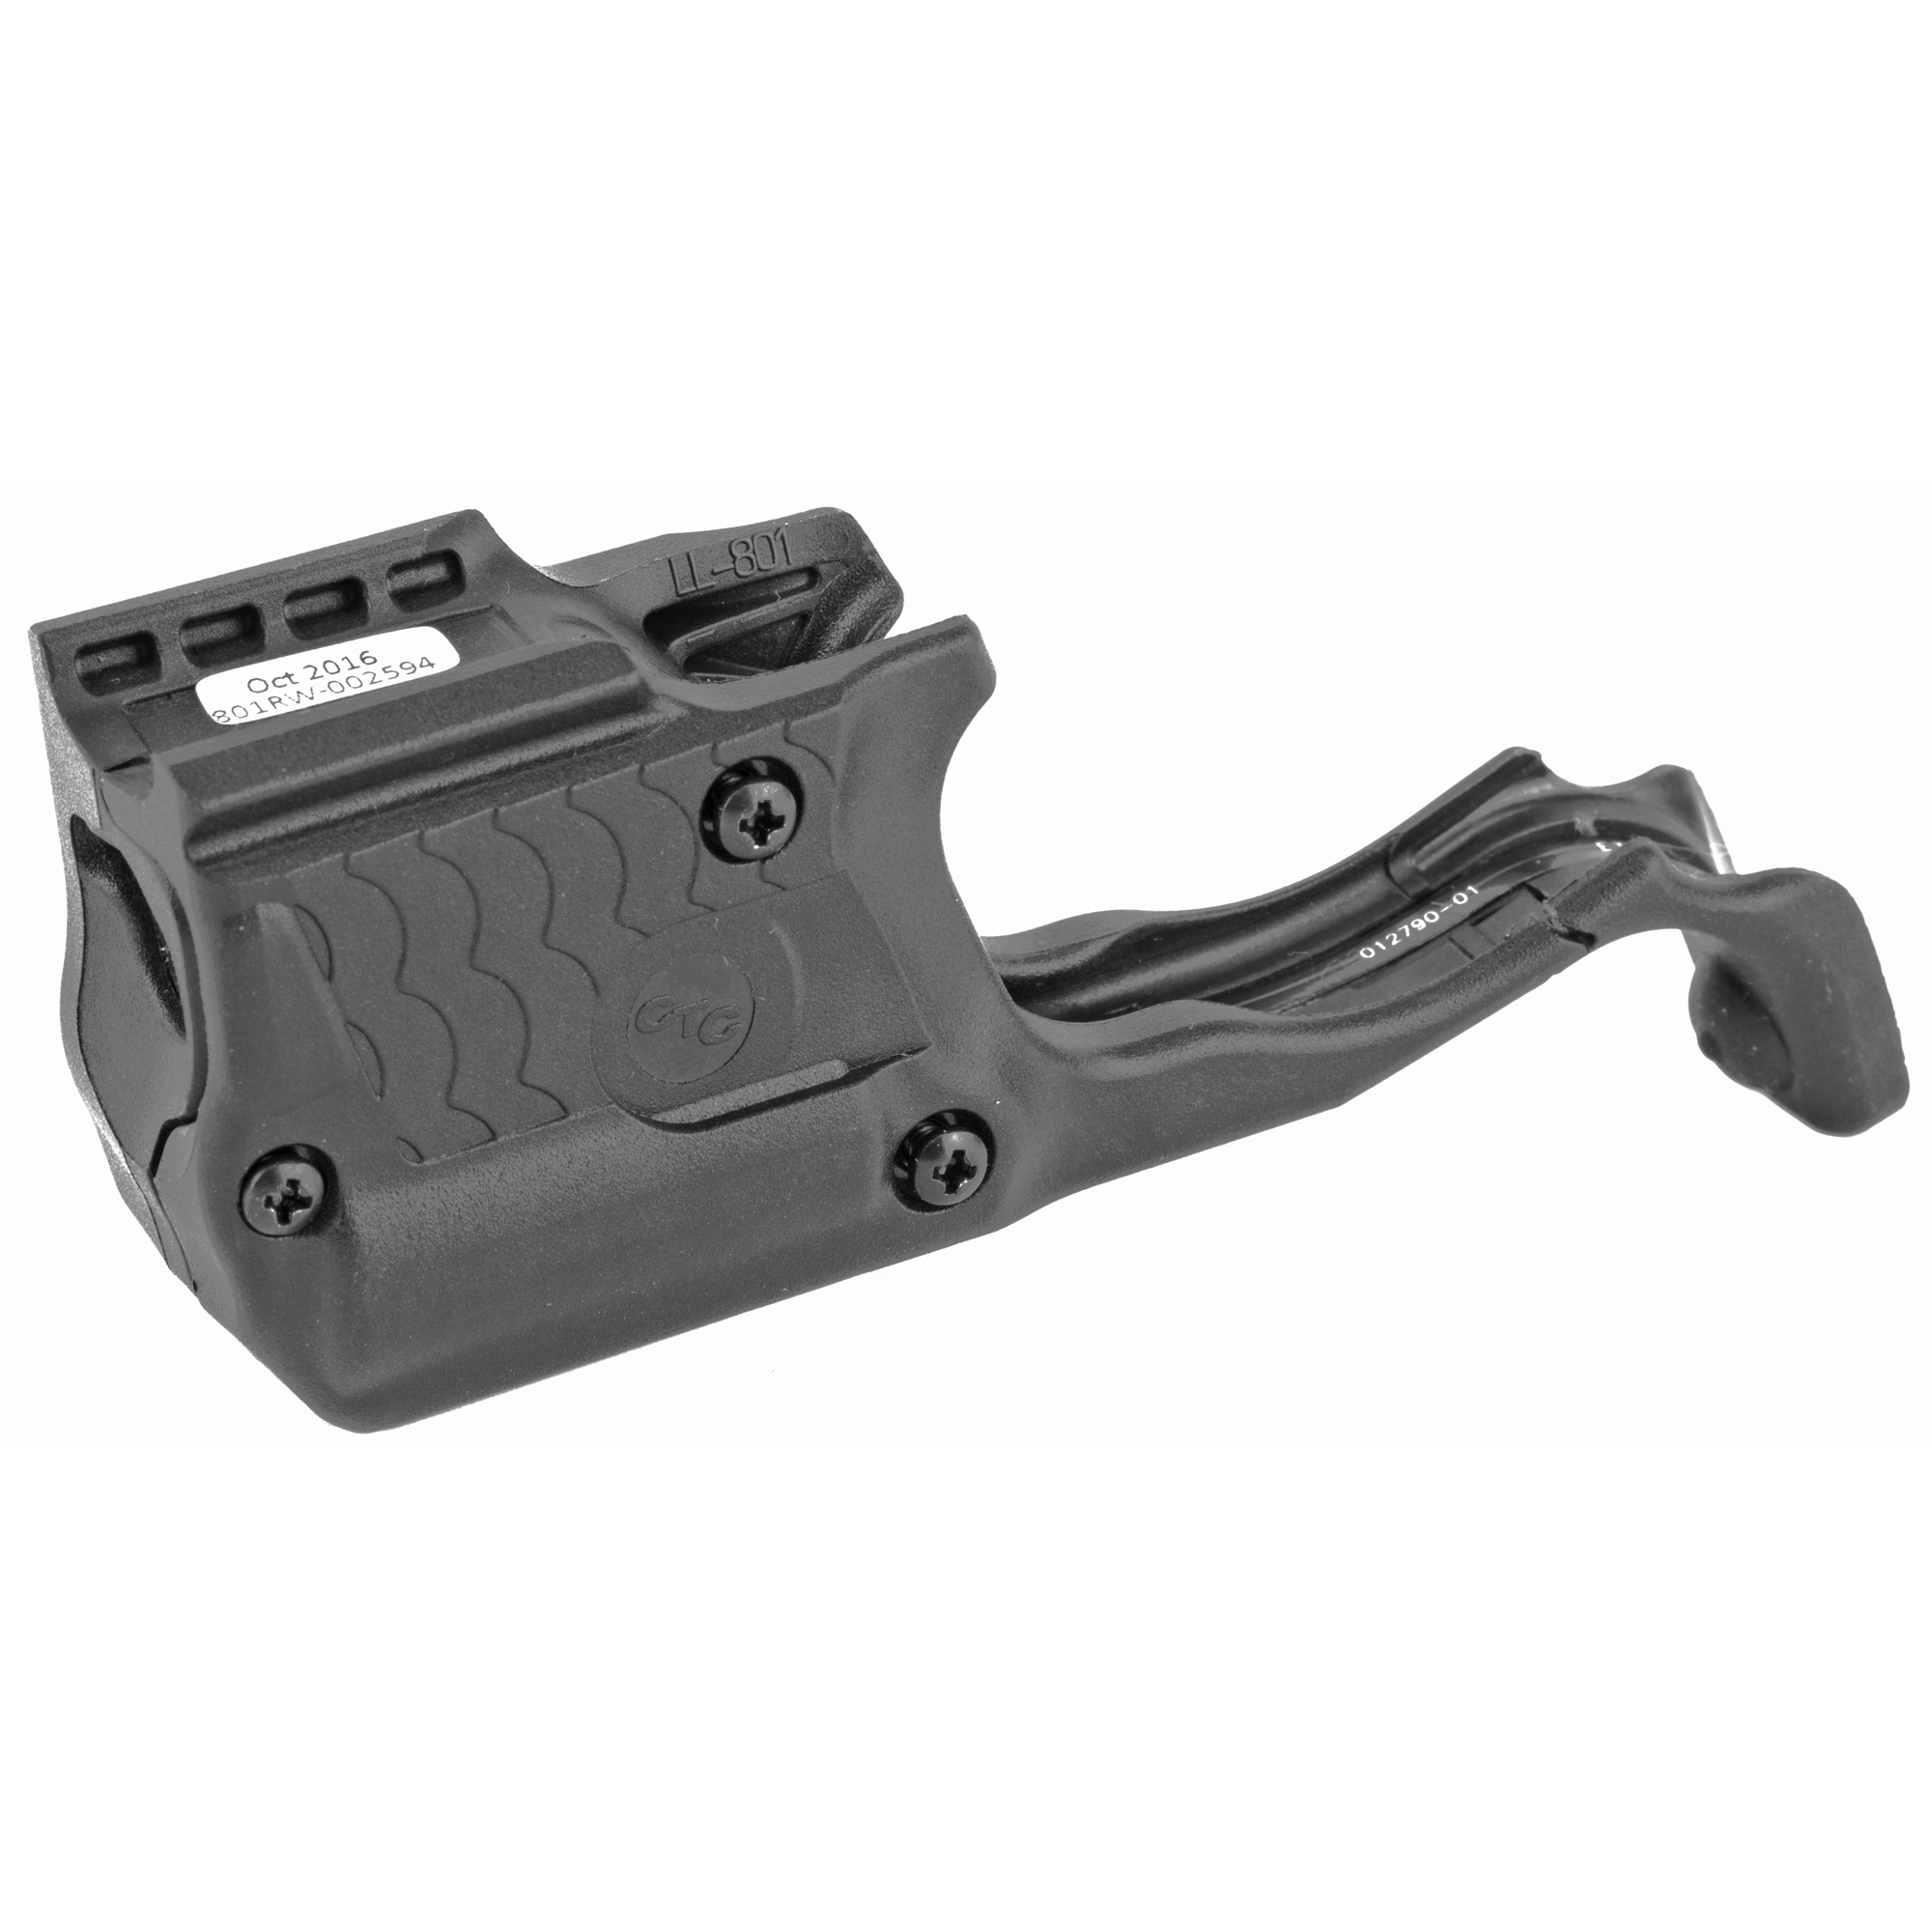 """LL-801 Laserguard(R) Pro(TM) for Smith & Wesson M&P Shield 9mm & .40 S&W is a powerful red laser sight and 150 Lumen LED white light in a single compact unit. Designed specifically for the M&P Shield platform"""" this illumination and targeting product is activated with Crimson Trace's famed Instinctive Activation(TM)"""" which activates the unit with a normal firing grip. LL-801 offers four modes of operation: Laser + Light"""" Laser Only"""" Light Only"""" and Laser + Light Strobe. The unit features a Master On/Off Switch"""" is completely user-installed in moments"""" is adjustable for windage and elevation and offers 2 hours of battery life."""